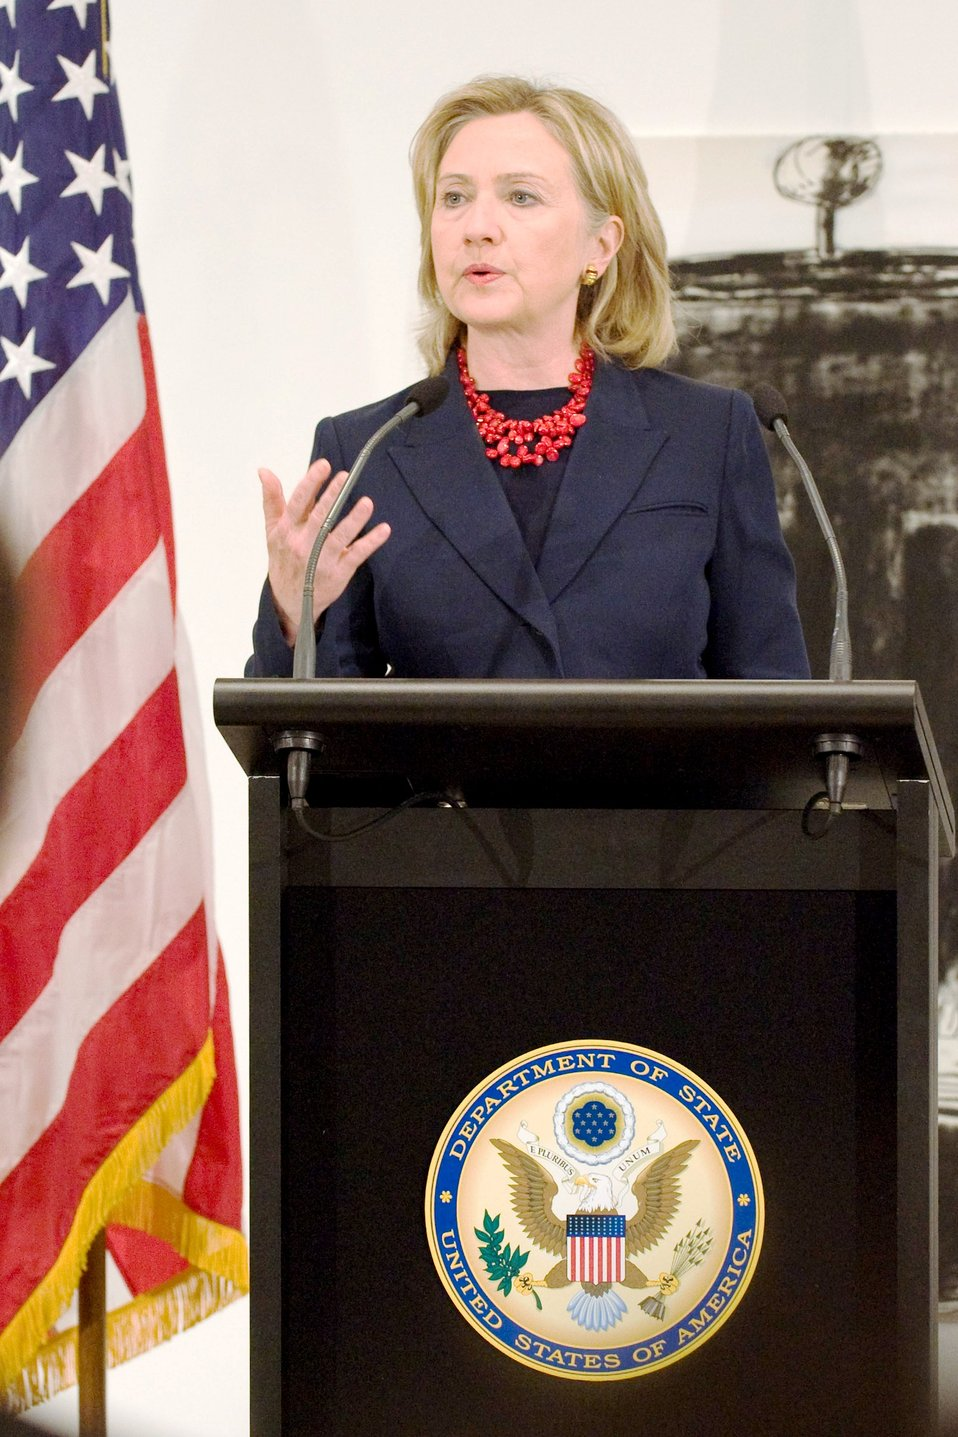 Secretary Clinton Delivers Remarks at Reception for U.S. Exporters